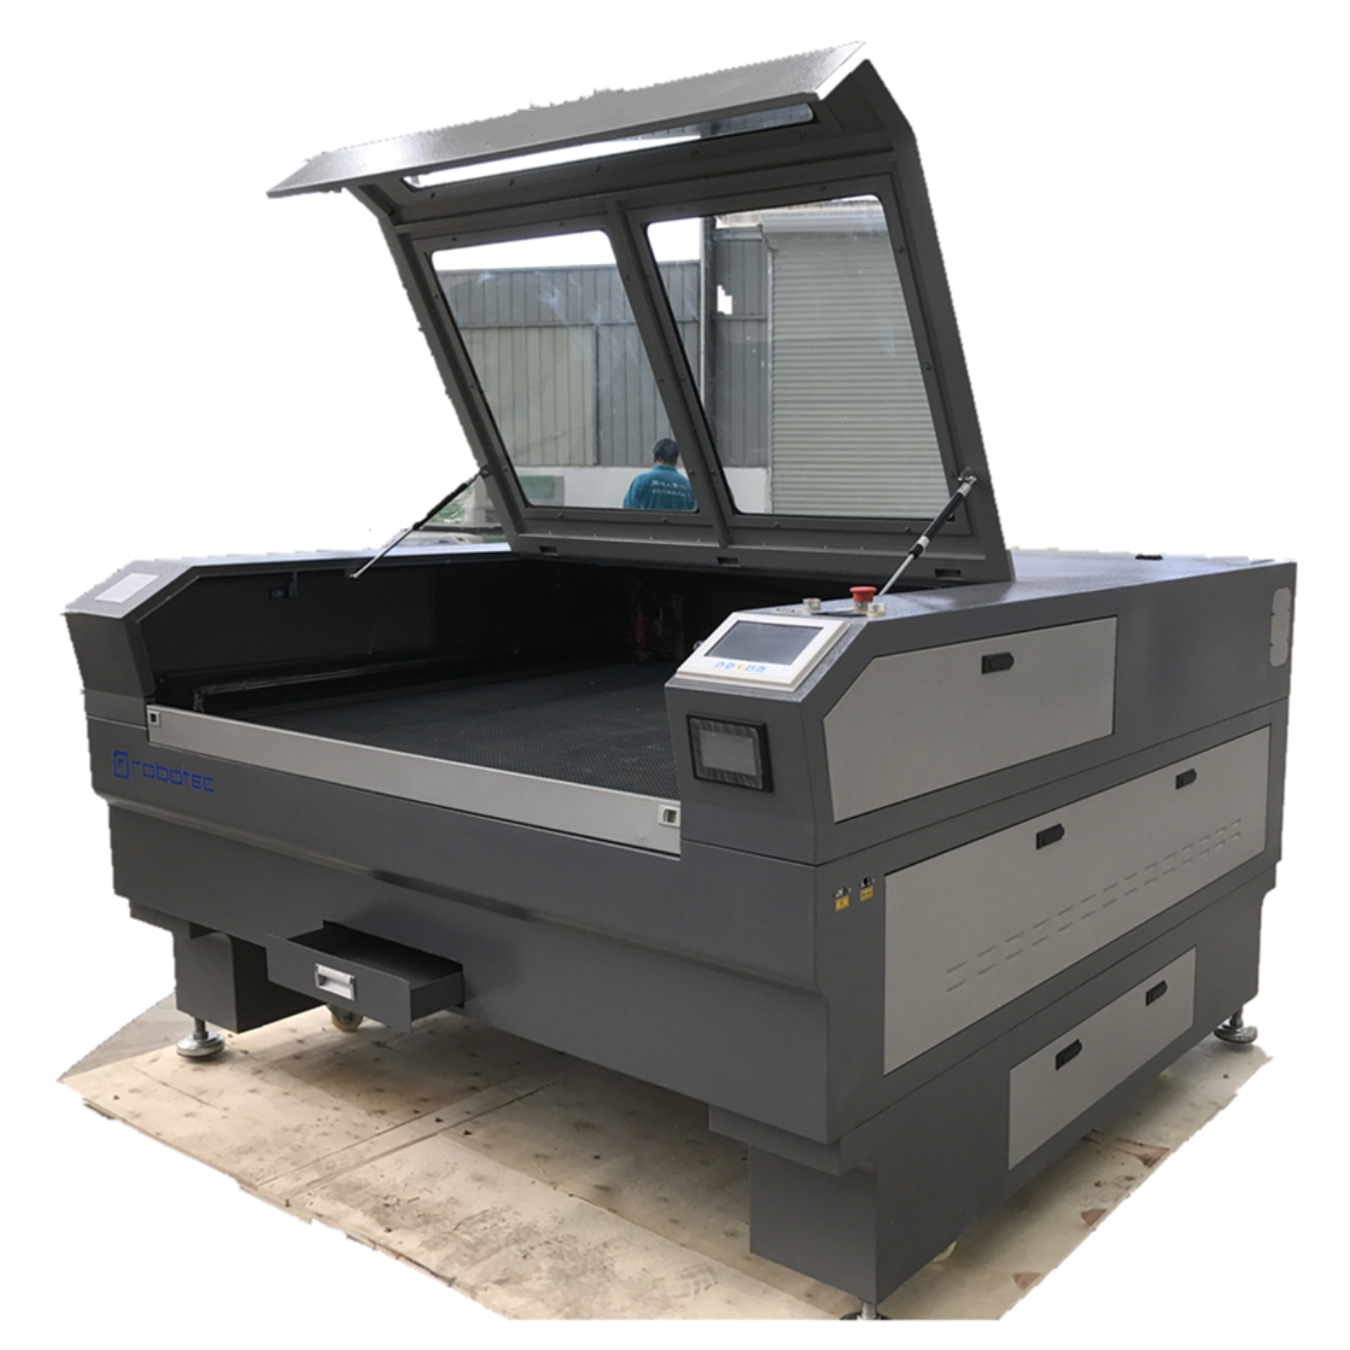 Mini Metal Cutting Laser Machine 1390 Cnc Laser Steel Cutting Machine Price With Reci Tube/stainless Steel Laser Cutter Engraver